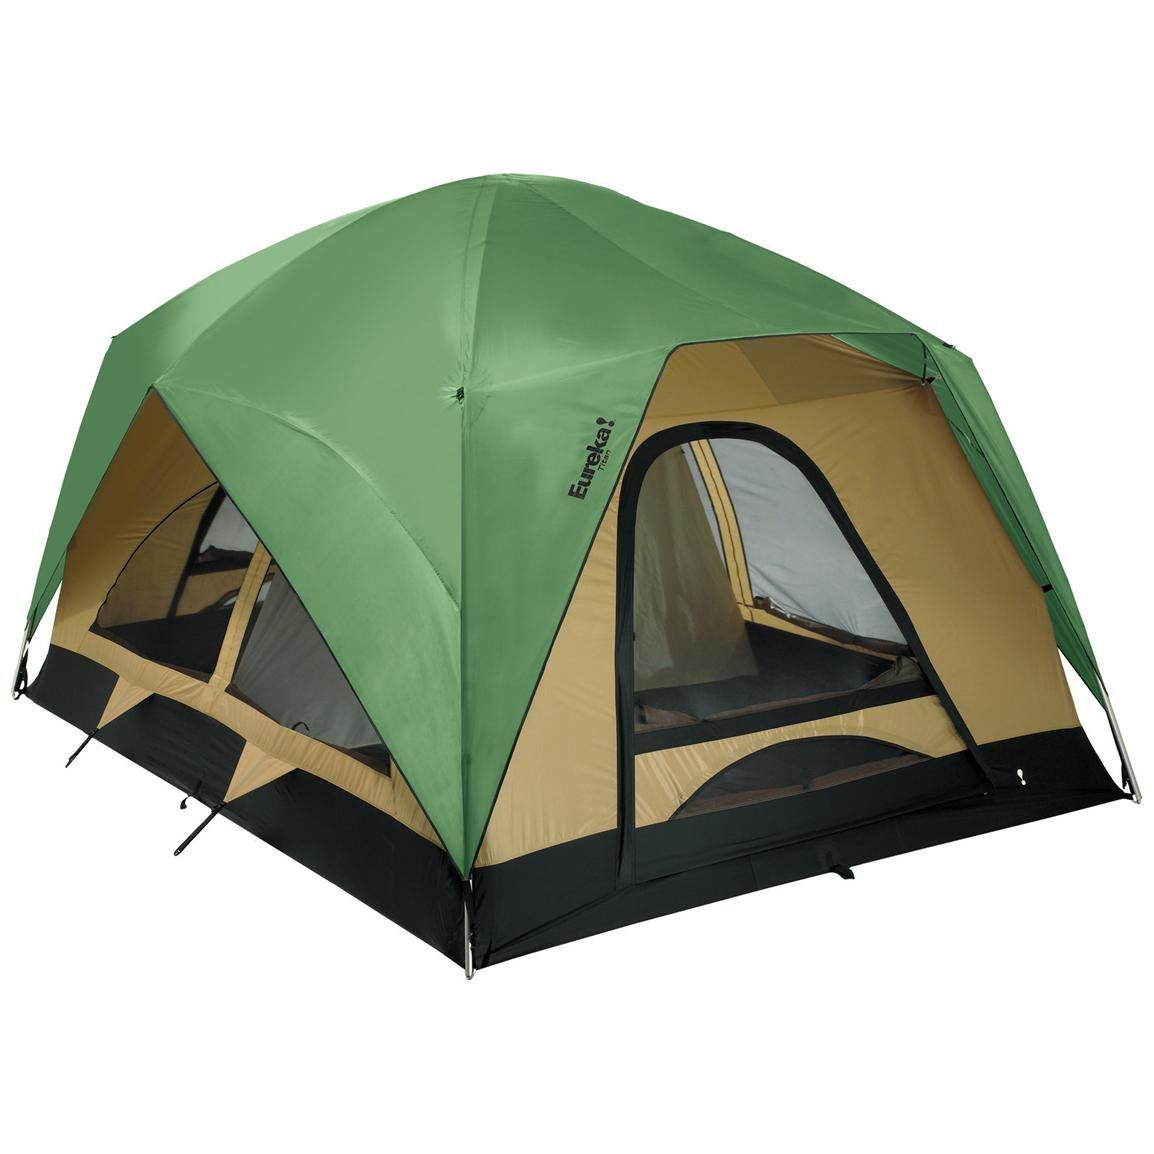 Sportsmanu0027s Guide has your Eureka!® Titan 8 - Person Tent available at a great price in our Cabin Tents collection  sc 1 st  Pinterest : eurkea tents - memphite.com